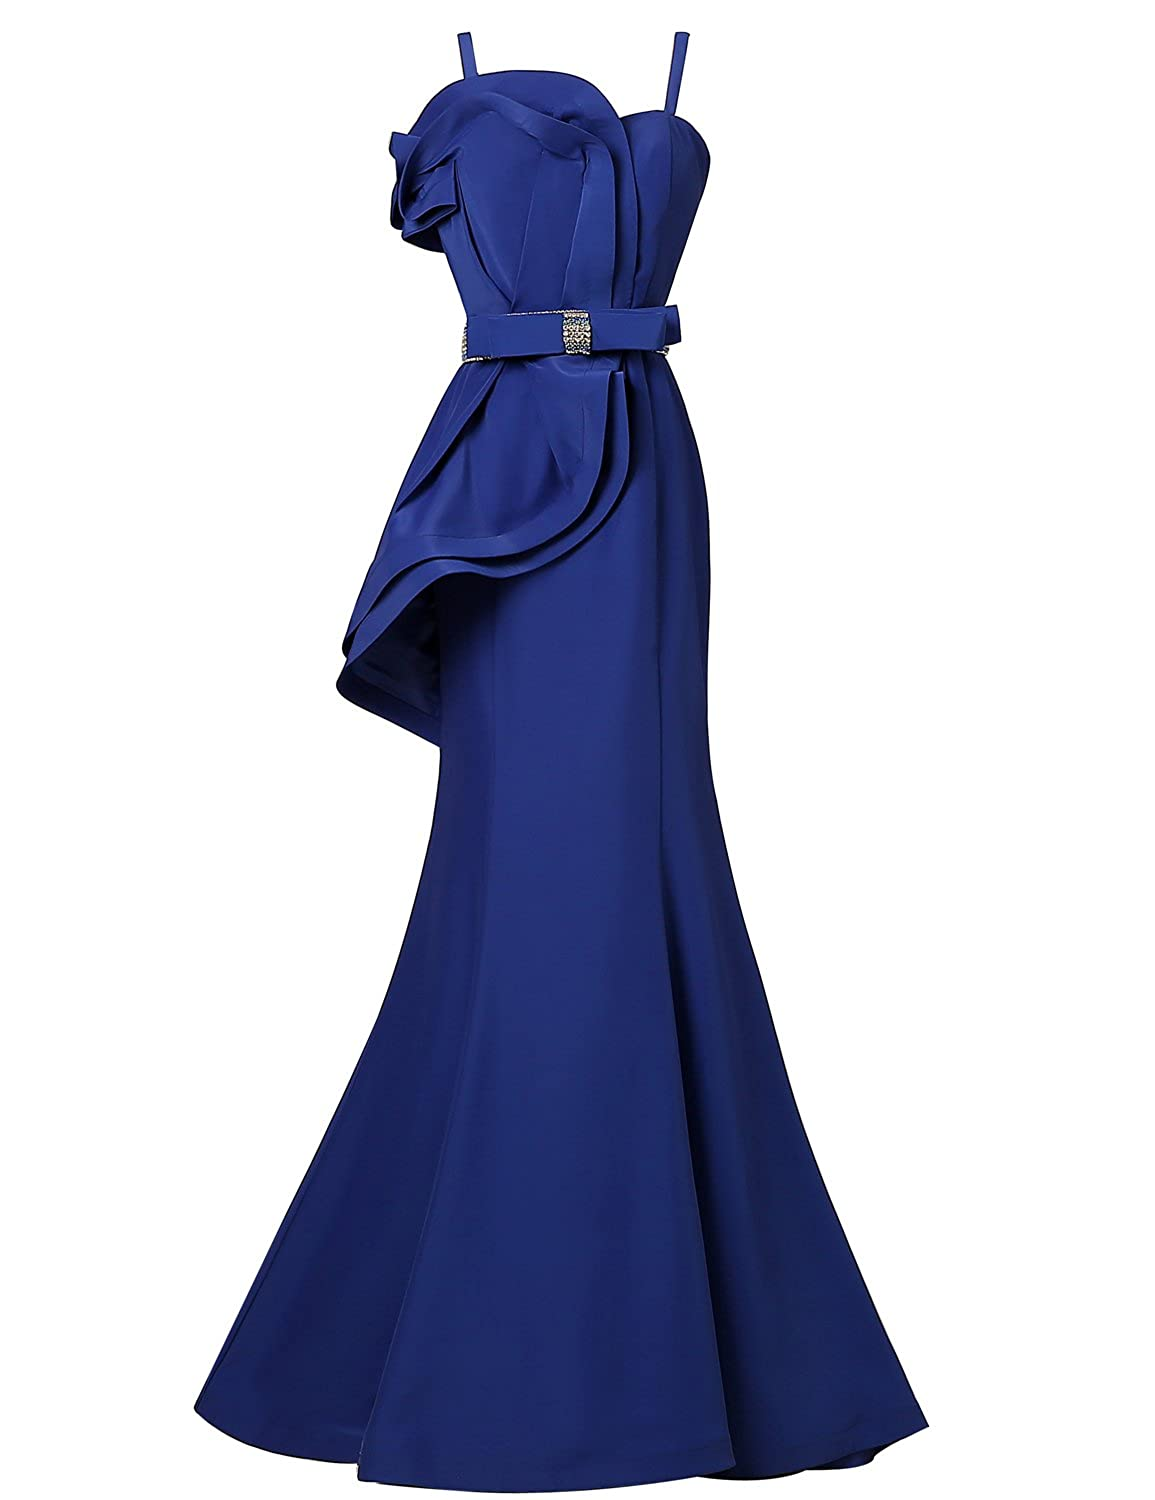 Sarahbridal Women's Long Sexy Evening Gowns Spaghetti Strap Mermaid Prom Dress Peplum Formal Party Dresses SHY009